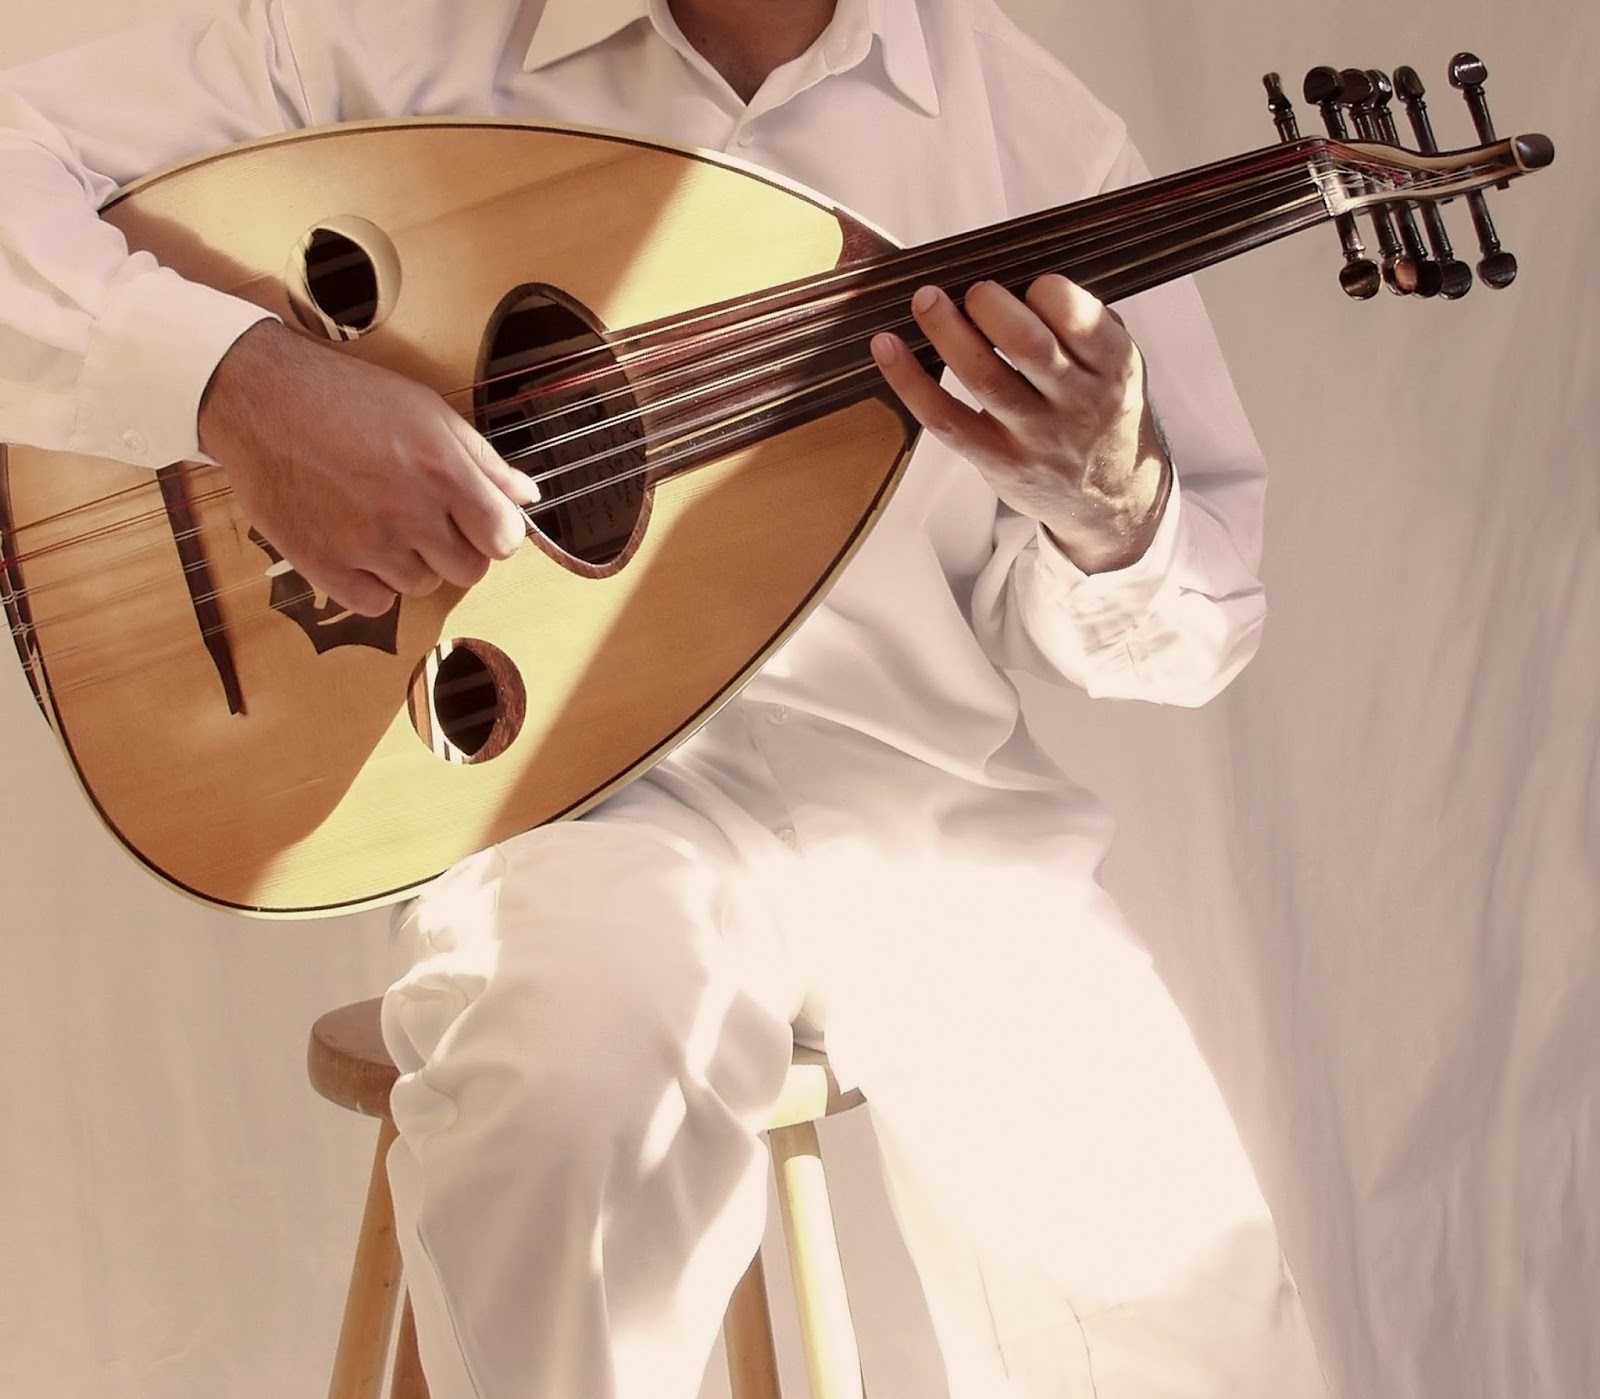 the oud Oud, oud music, arabic music lute, and arabic music mp3 for oud and more from maqam mp3.